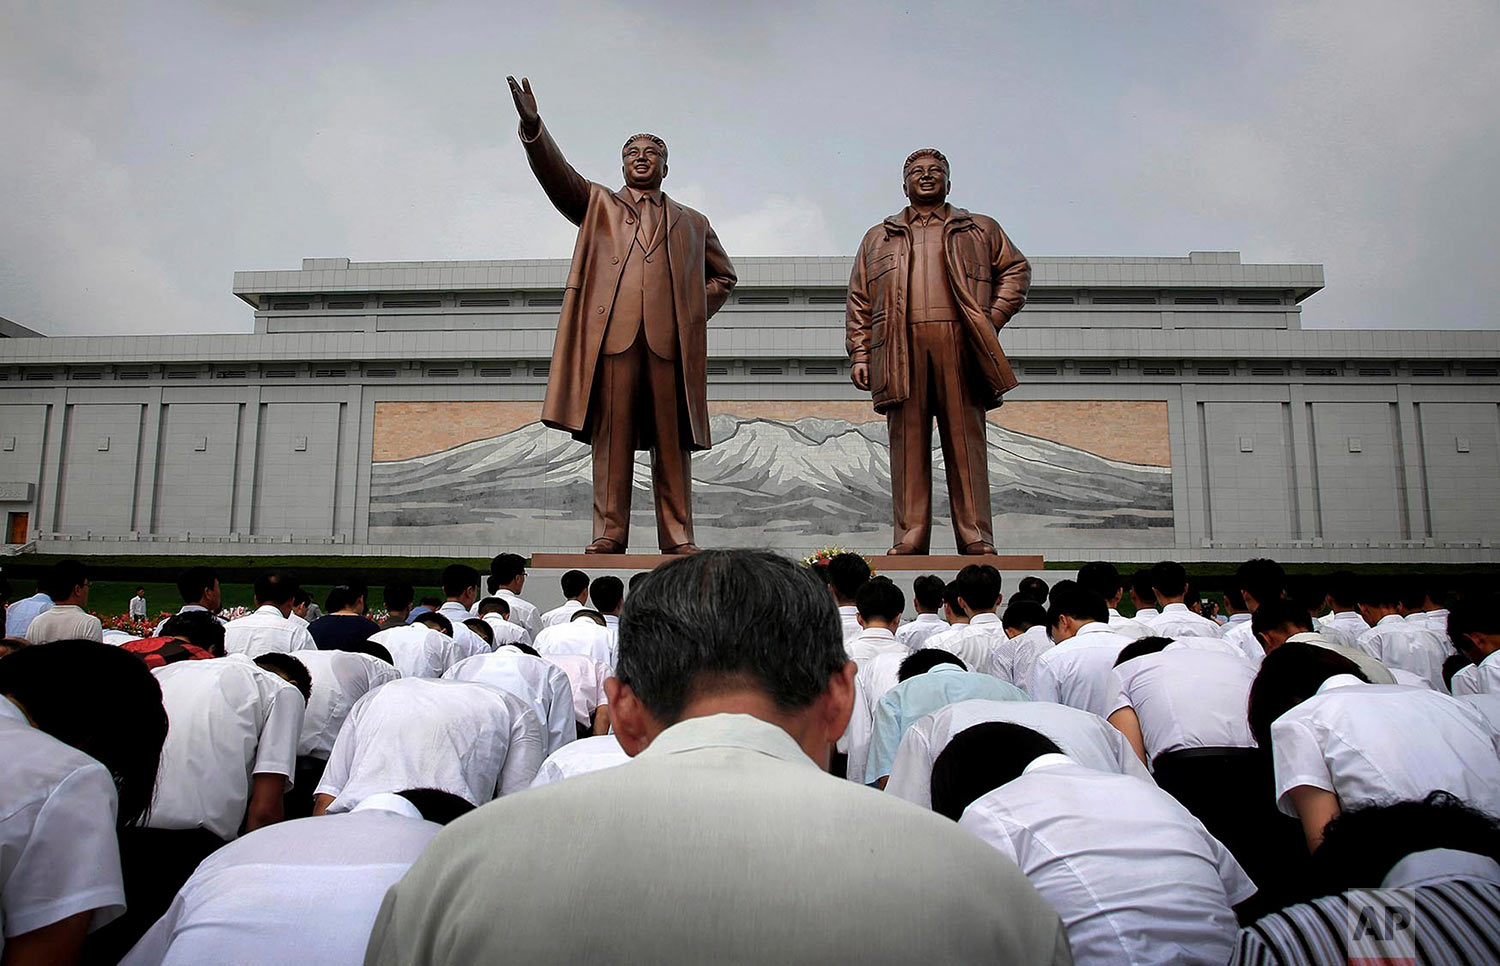 North Koreans bow in front of bronze statues of the late leaders Kim Il Sung, left, and Kim Jong Il at Munsu Hill in Pyongyang on July 27, 2015. The statues were created by artists from Mansudae Art Studio. Since its opening by Kim Il Sung in 1959, the studio has produced an estimated 38,000 statues and 170,000 other monuments for domestic use. (AP Photo/Wong Maye-E)